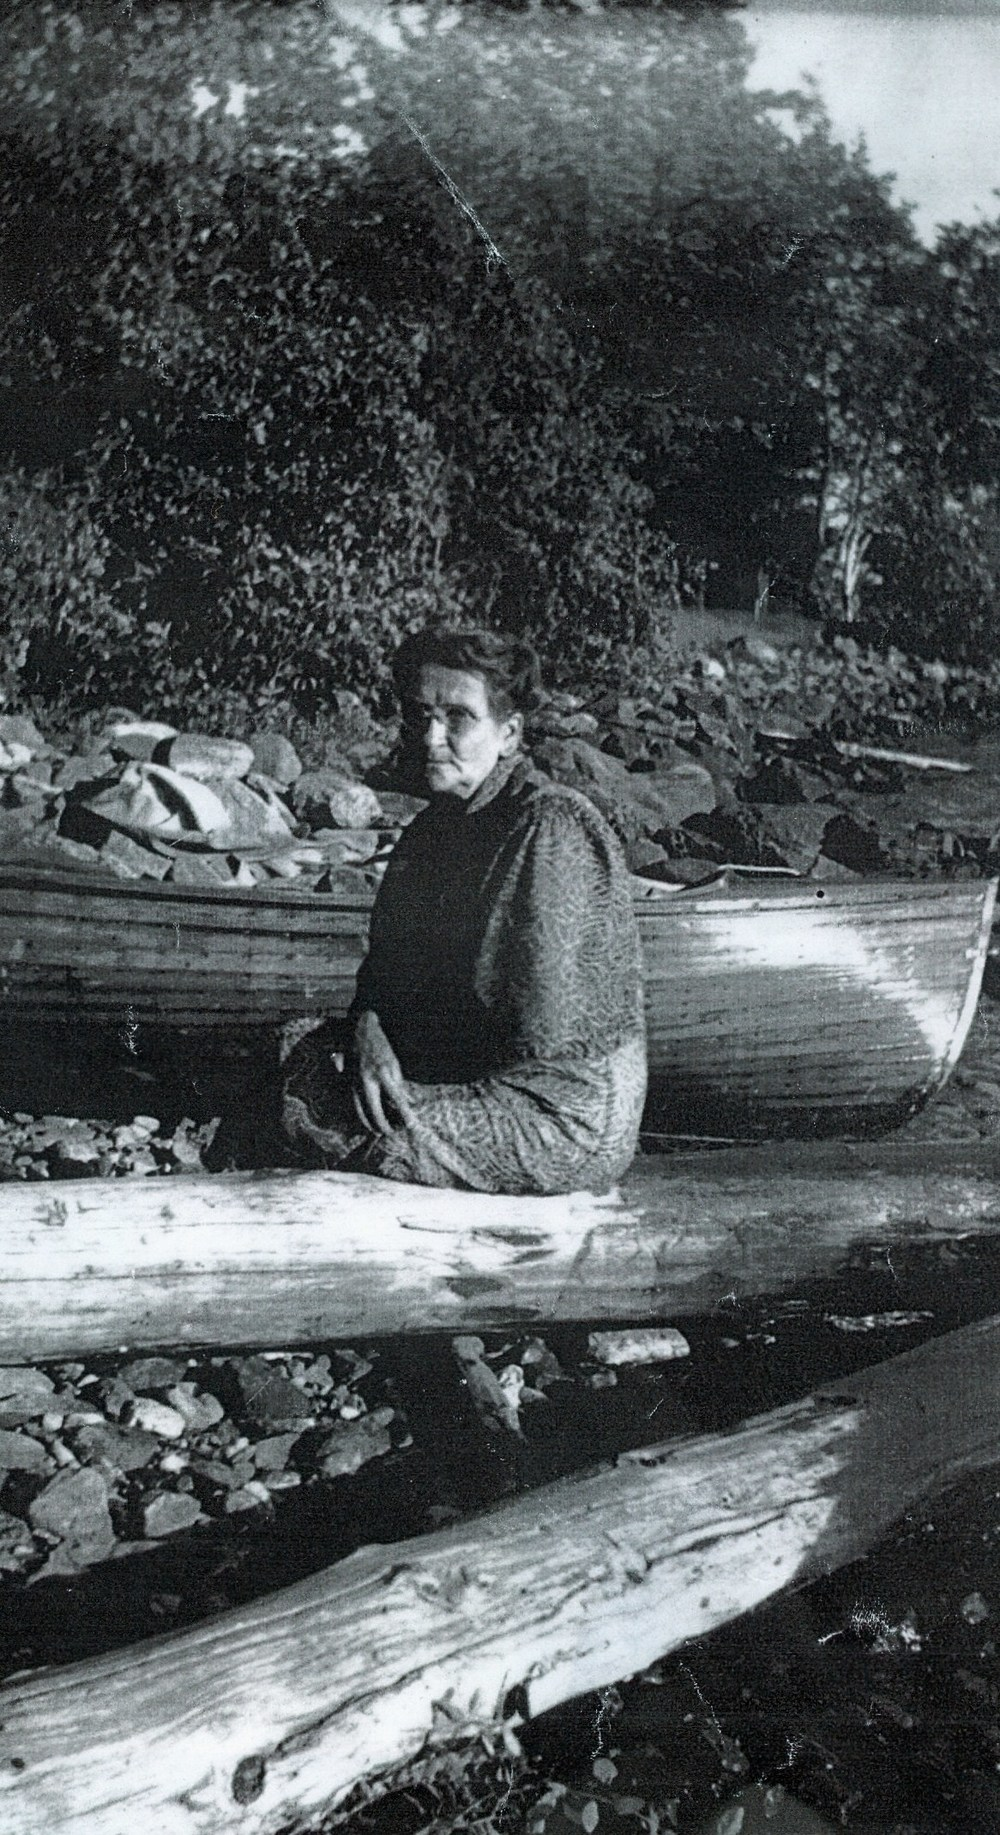 Elizabeth Gaffney, Bonter boat in background c.1936